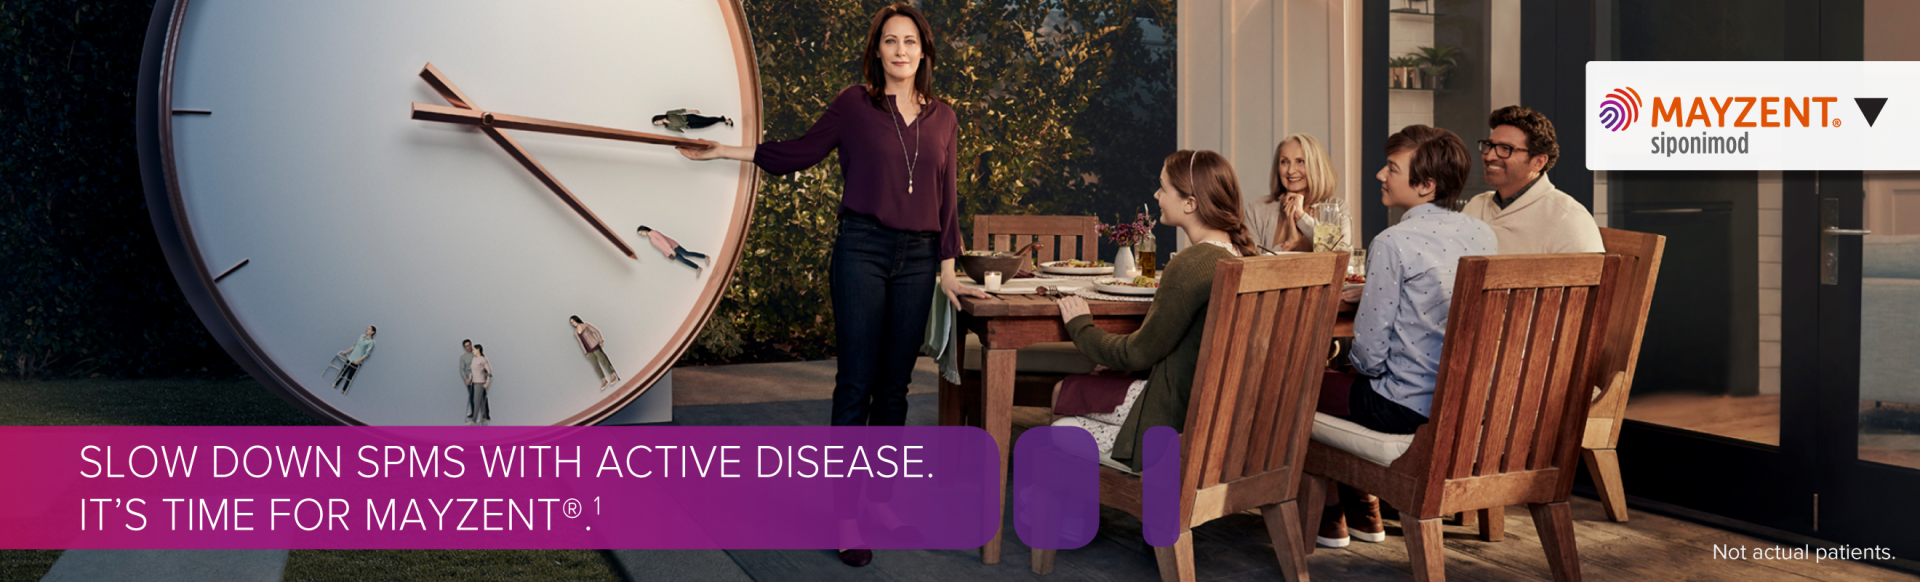 Branded image with the words 'Slow down SPMS with active disease.'